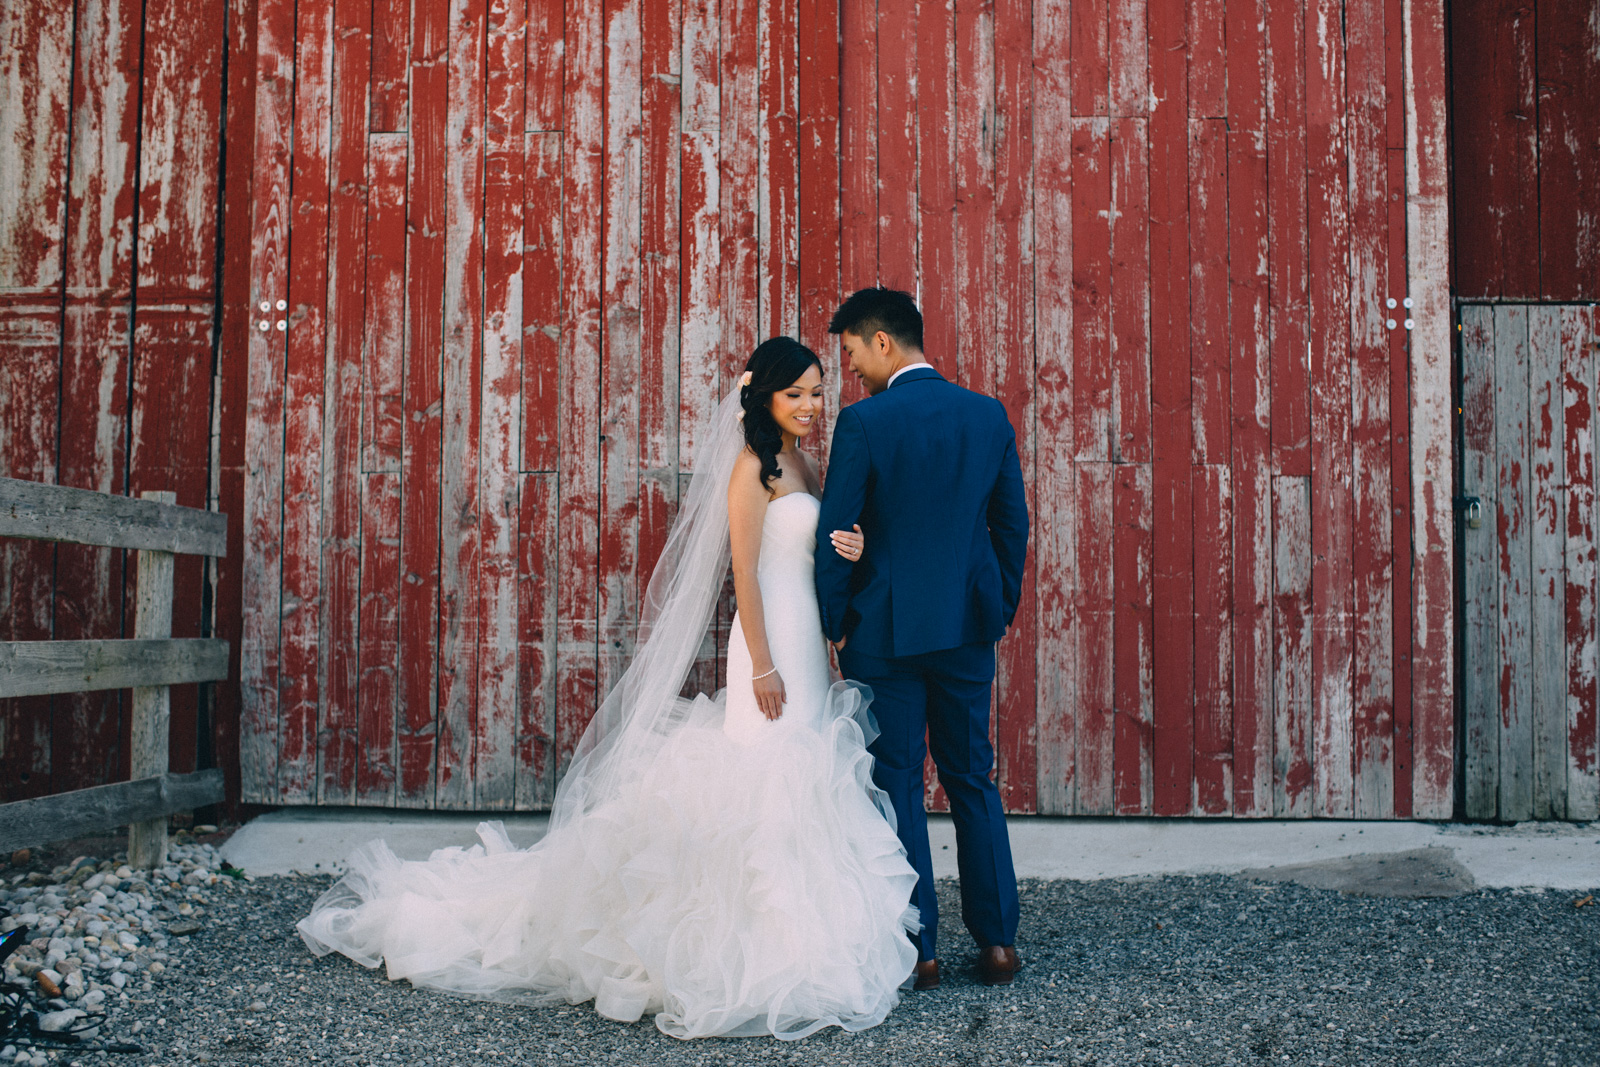 Cambium-Farms-wedding-photography-by-Sam-Wong-of-Artanis-Collective_01.jpg